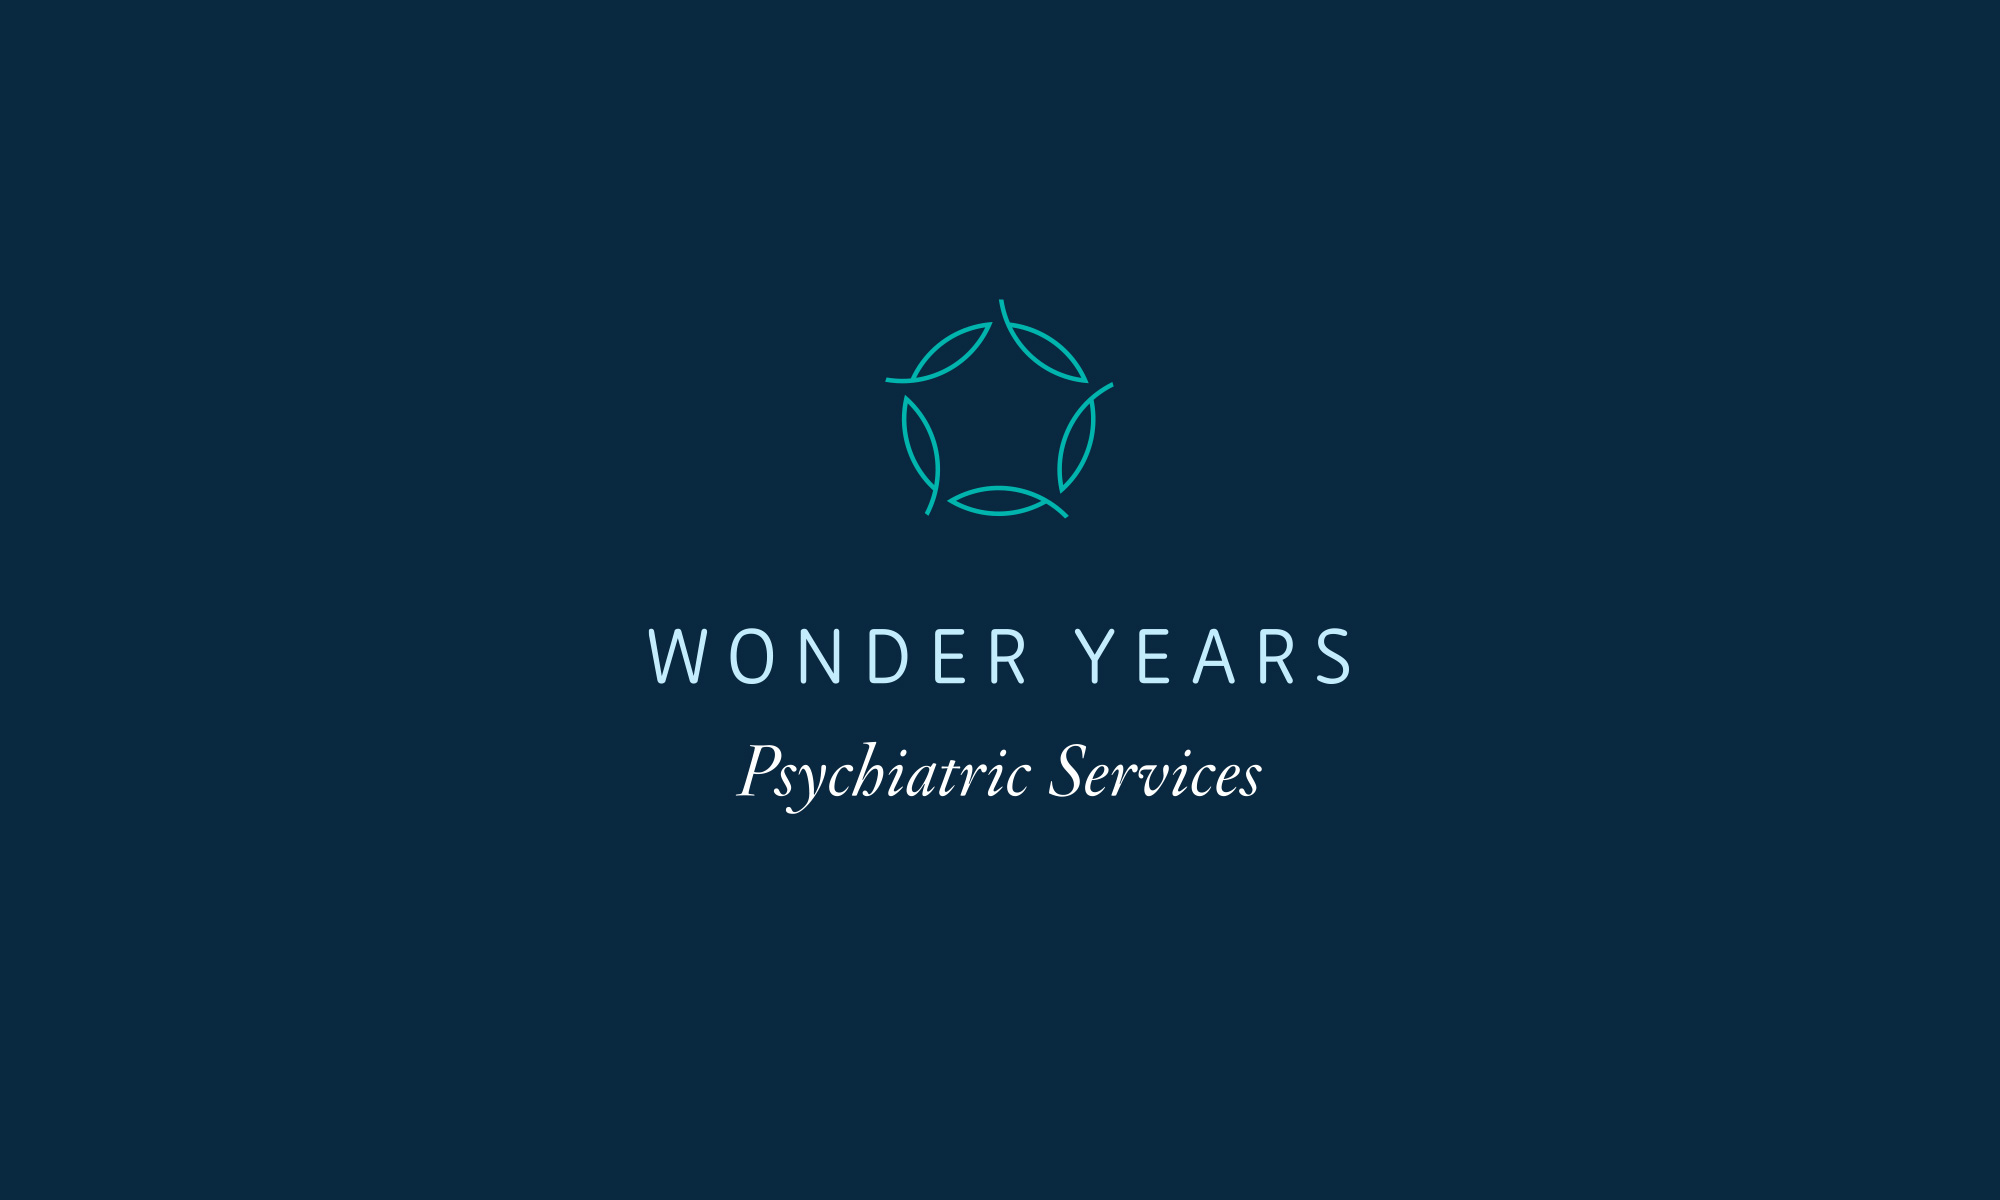 Wonder Years logo lockup